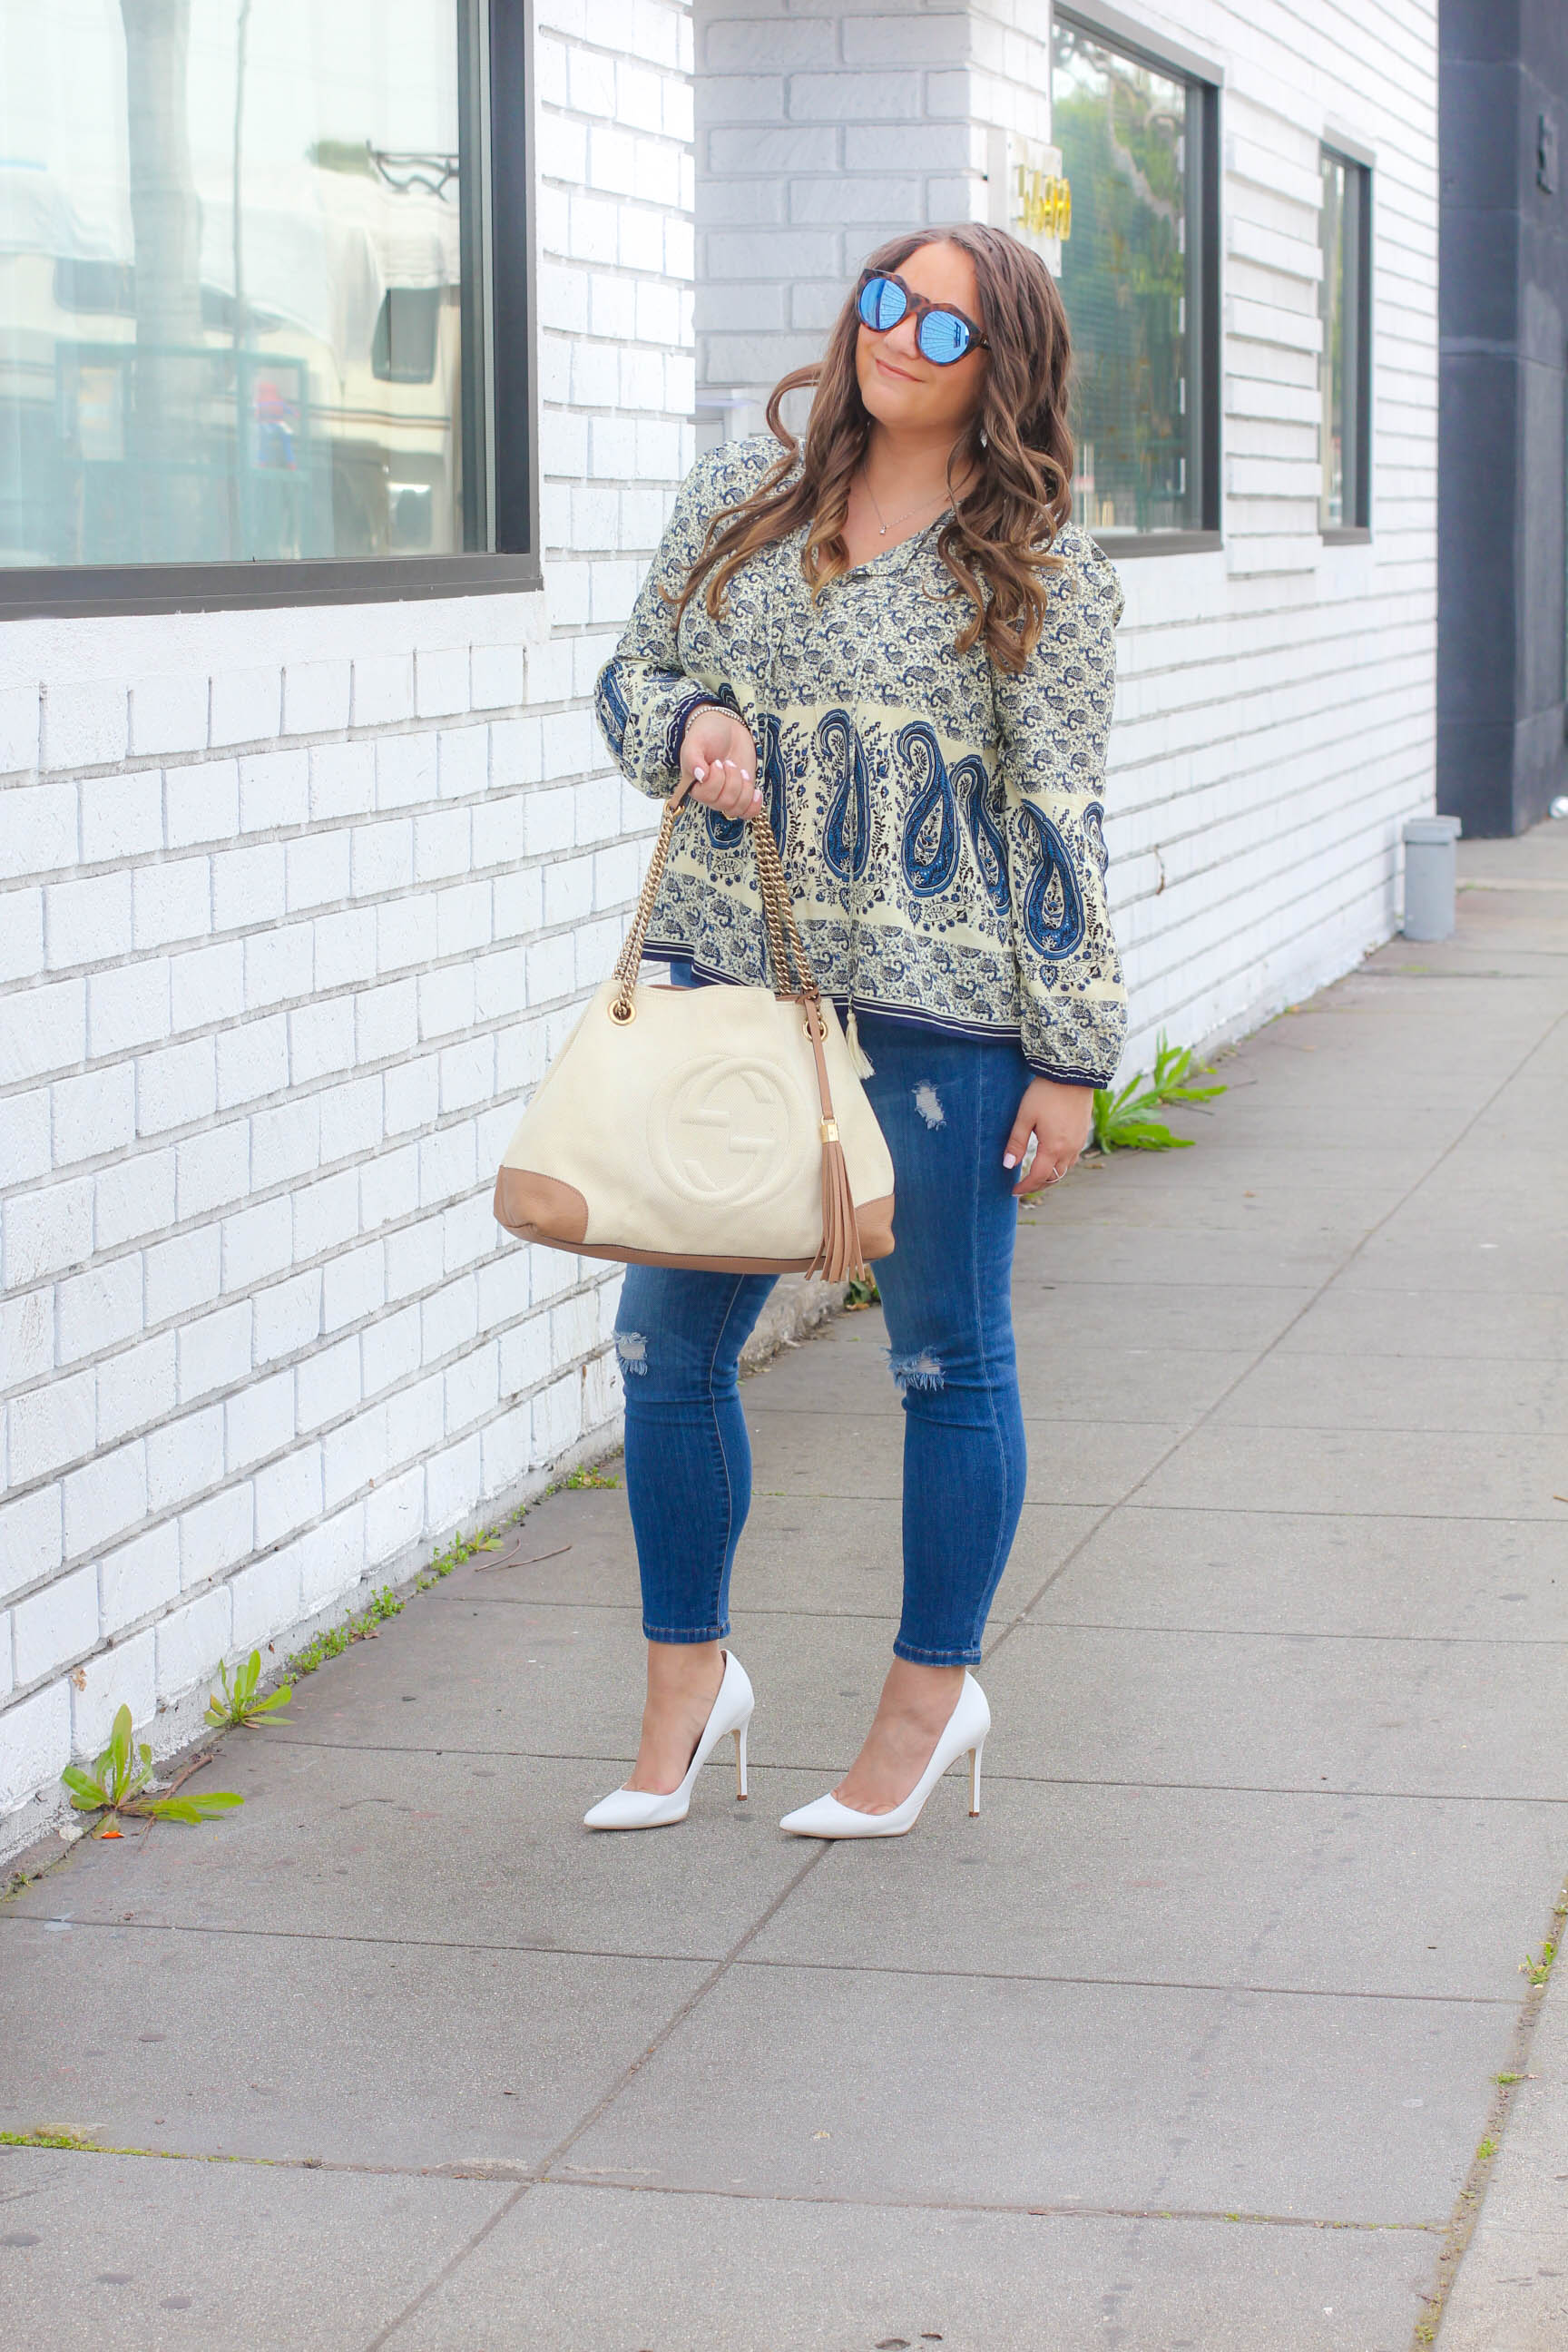 missyonmadison, melissa tierney, missyonmadison instagram, melissa tierney instagram, wild blue denim, white pumps, white pointed toe pumps, gucci, gucci soho tote, white gucci soho tote, bloglovin, fashion blogger,style blogger, spring style, spring trends 2017, spring style 2017, jeggings, wild blue jeggings, ripped jeans, reipped jeggings, fashion trends, le specs sunglasses, le specs, wild blue denim boho top, paisley print top, boho top, how to style skinny jeans, how to style white pumps, how to style distressed jeans, la blogger, affordable fashion,